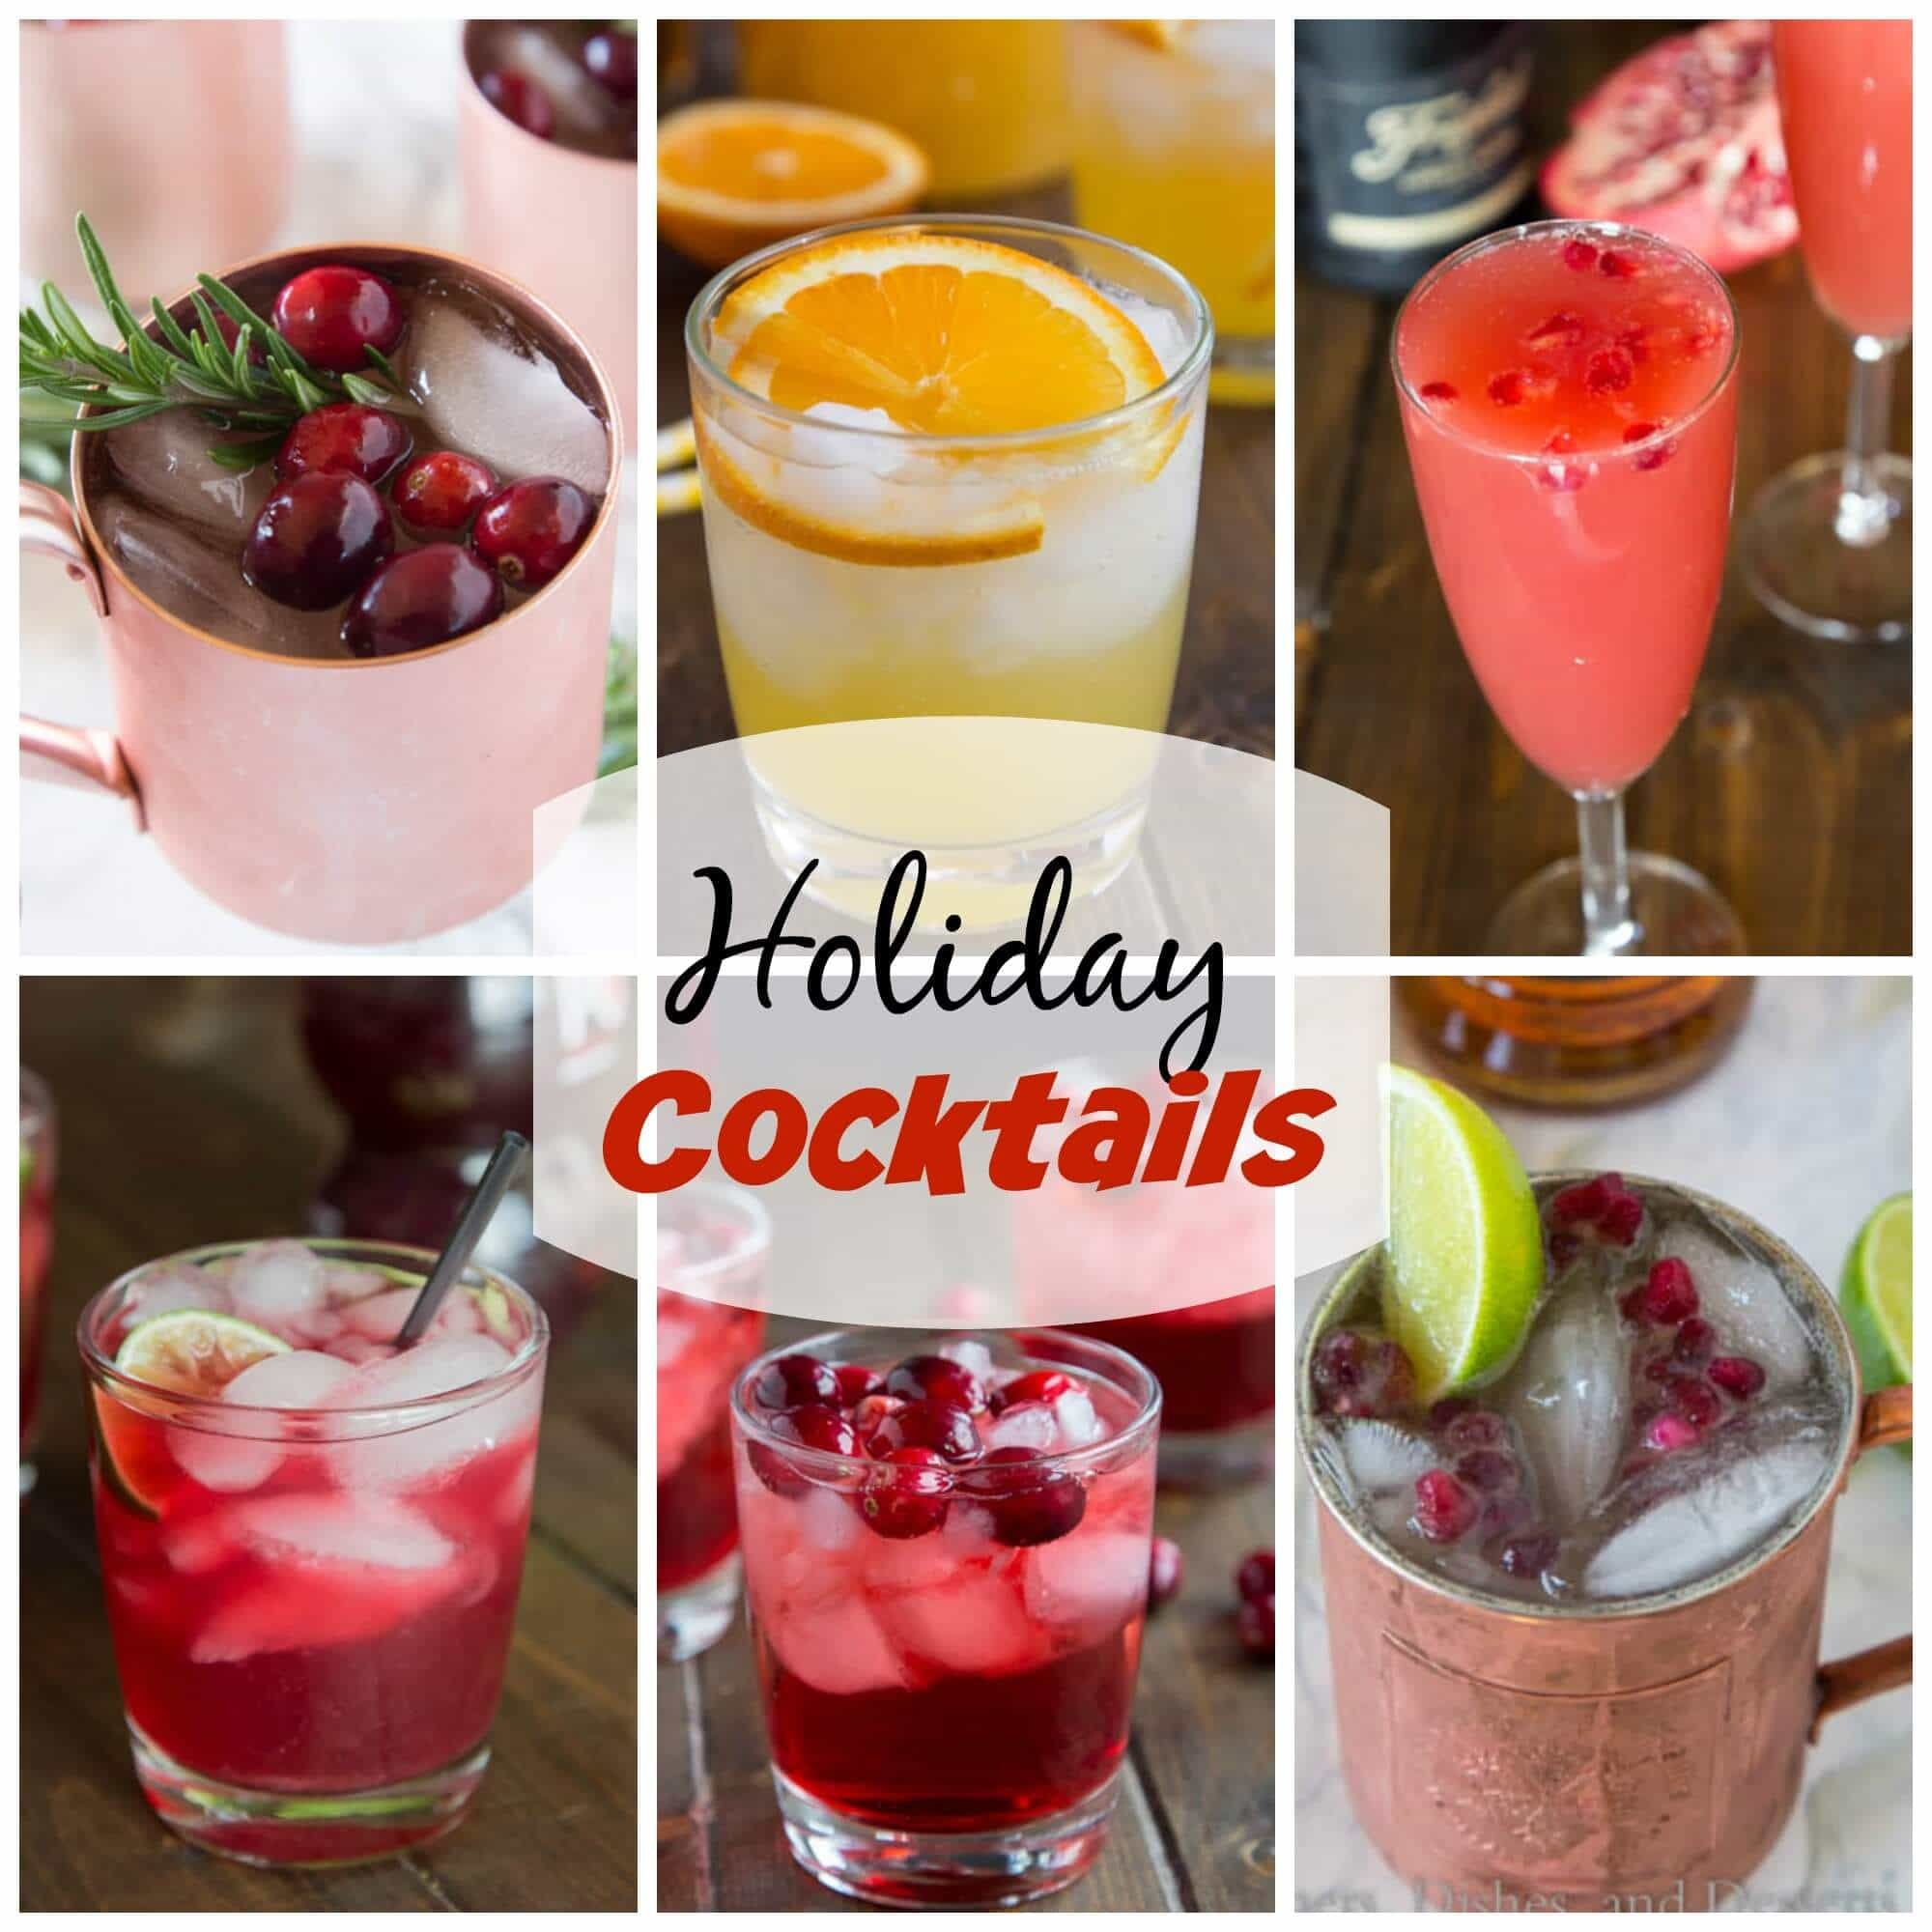 4 Holiday Cocktail Recipes by Food Drink Bloggers To Sip This Season